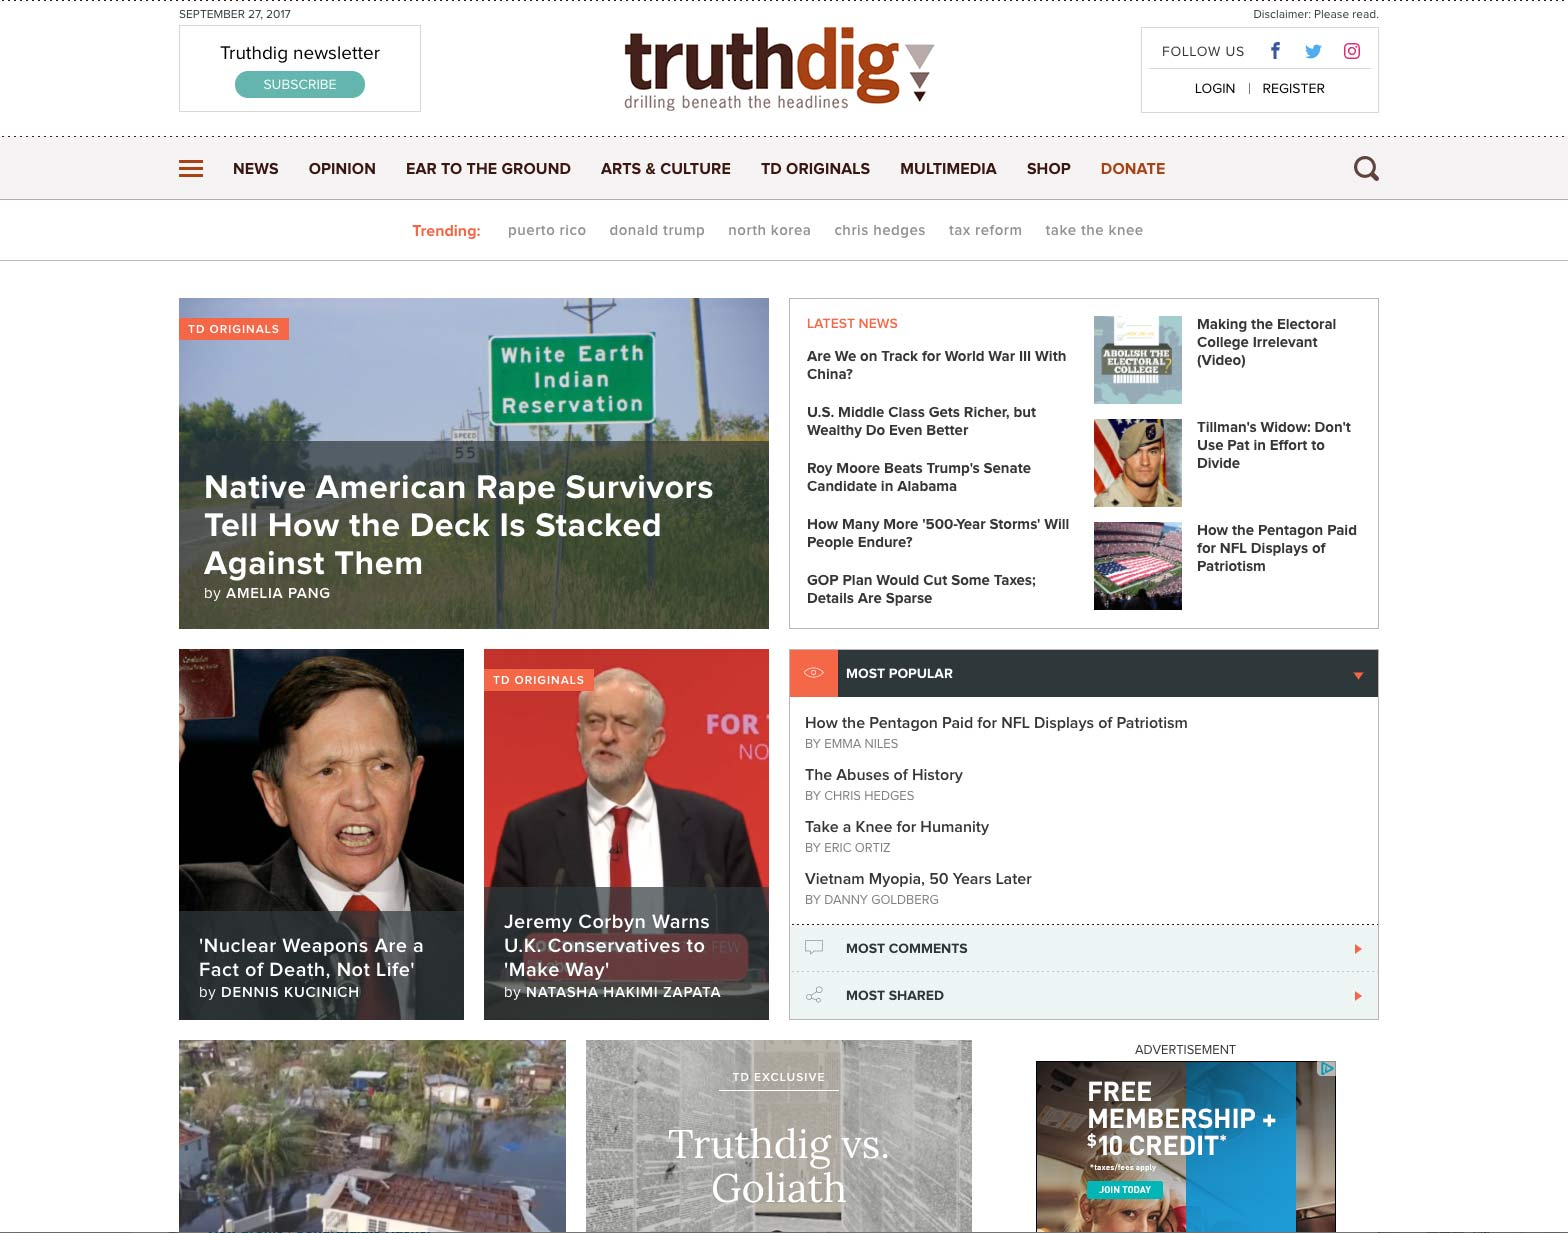 Screenshot of Truthdig website home page